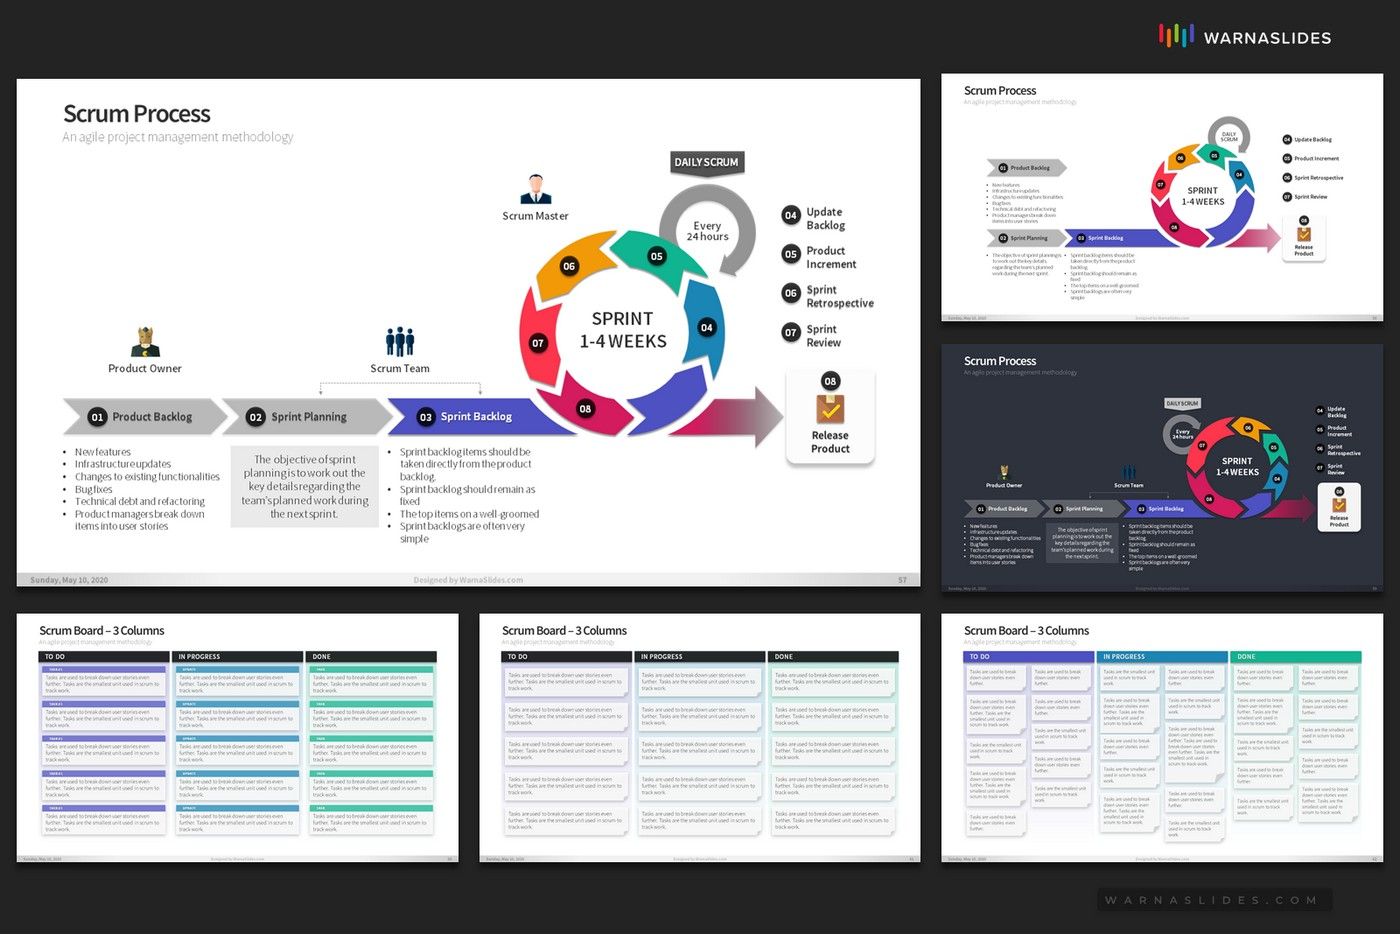 Agile-Scrum-Framework-Scrum-Process-Diagram-PowerPoint-Template-for-Business-Pitch-Deck-Professional-Creative-PowerPoint-Icons-018